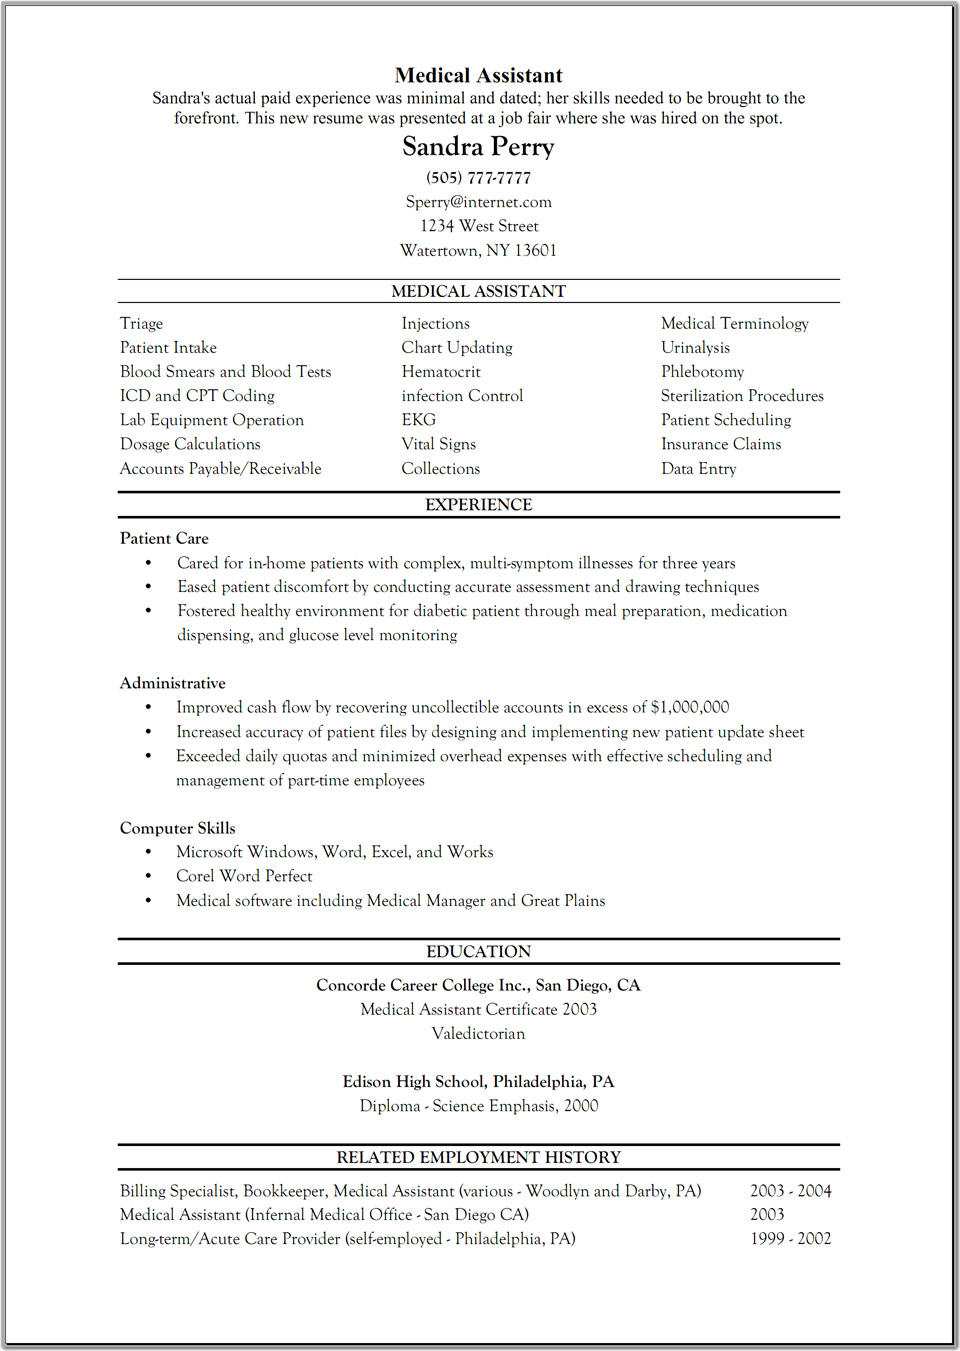 10 Sample Resume For Medical Administrative Assistant. Online Birthday Invitation Maker For Free Template. Format Of Resume For Students. Marketing Associate Job Description Template. Sample Nursing Resume Objective Template. Timer For Fifteen Minutes Template. Double Fold Card Template. Prize Wheel Template. Professional Skills On Resume Template